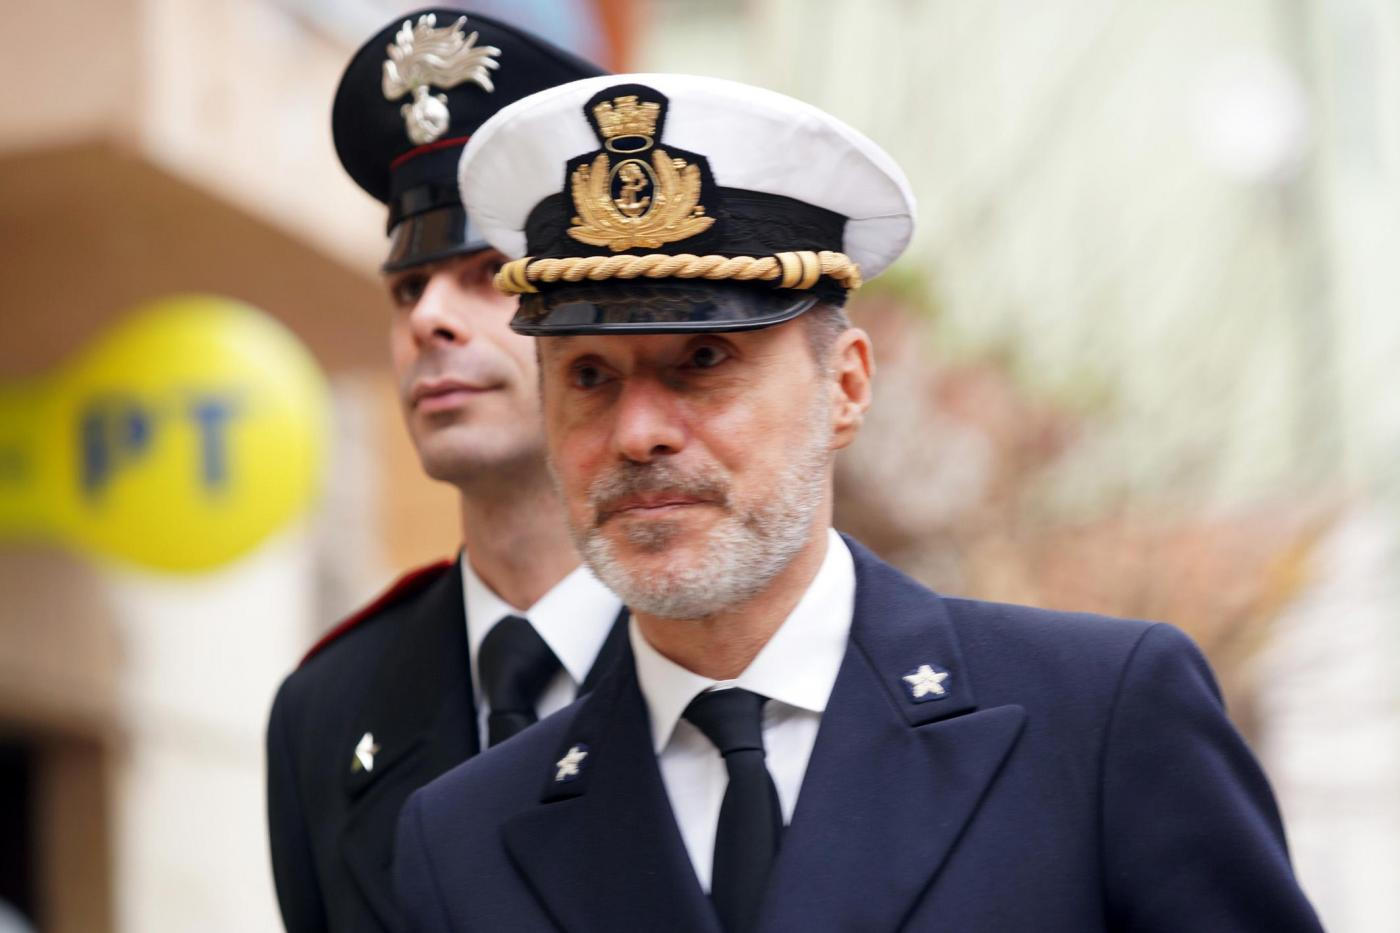 Gregorio De Falco eroe per la seconda volta: salva un disperso in mare